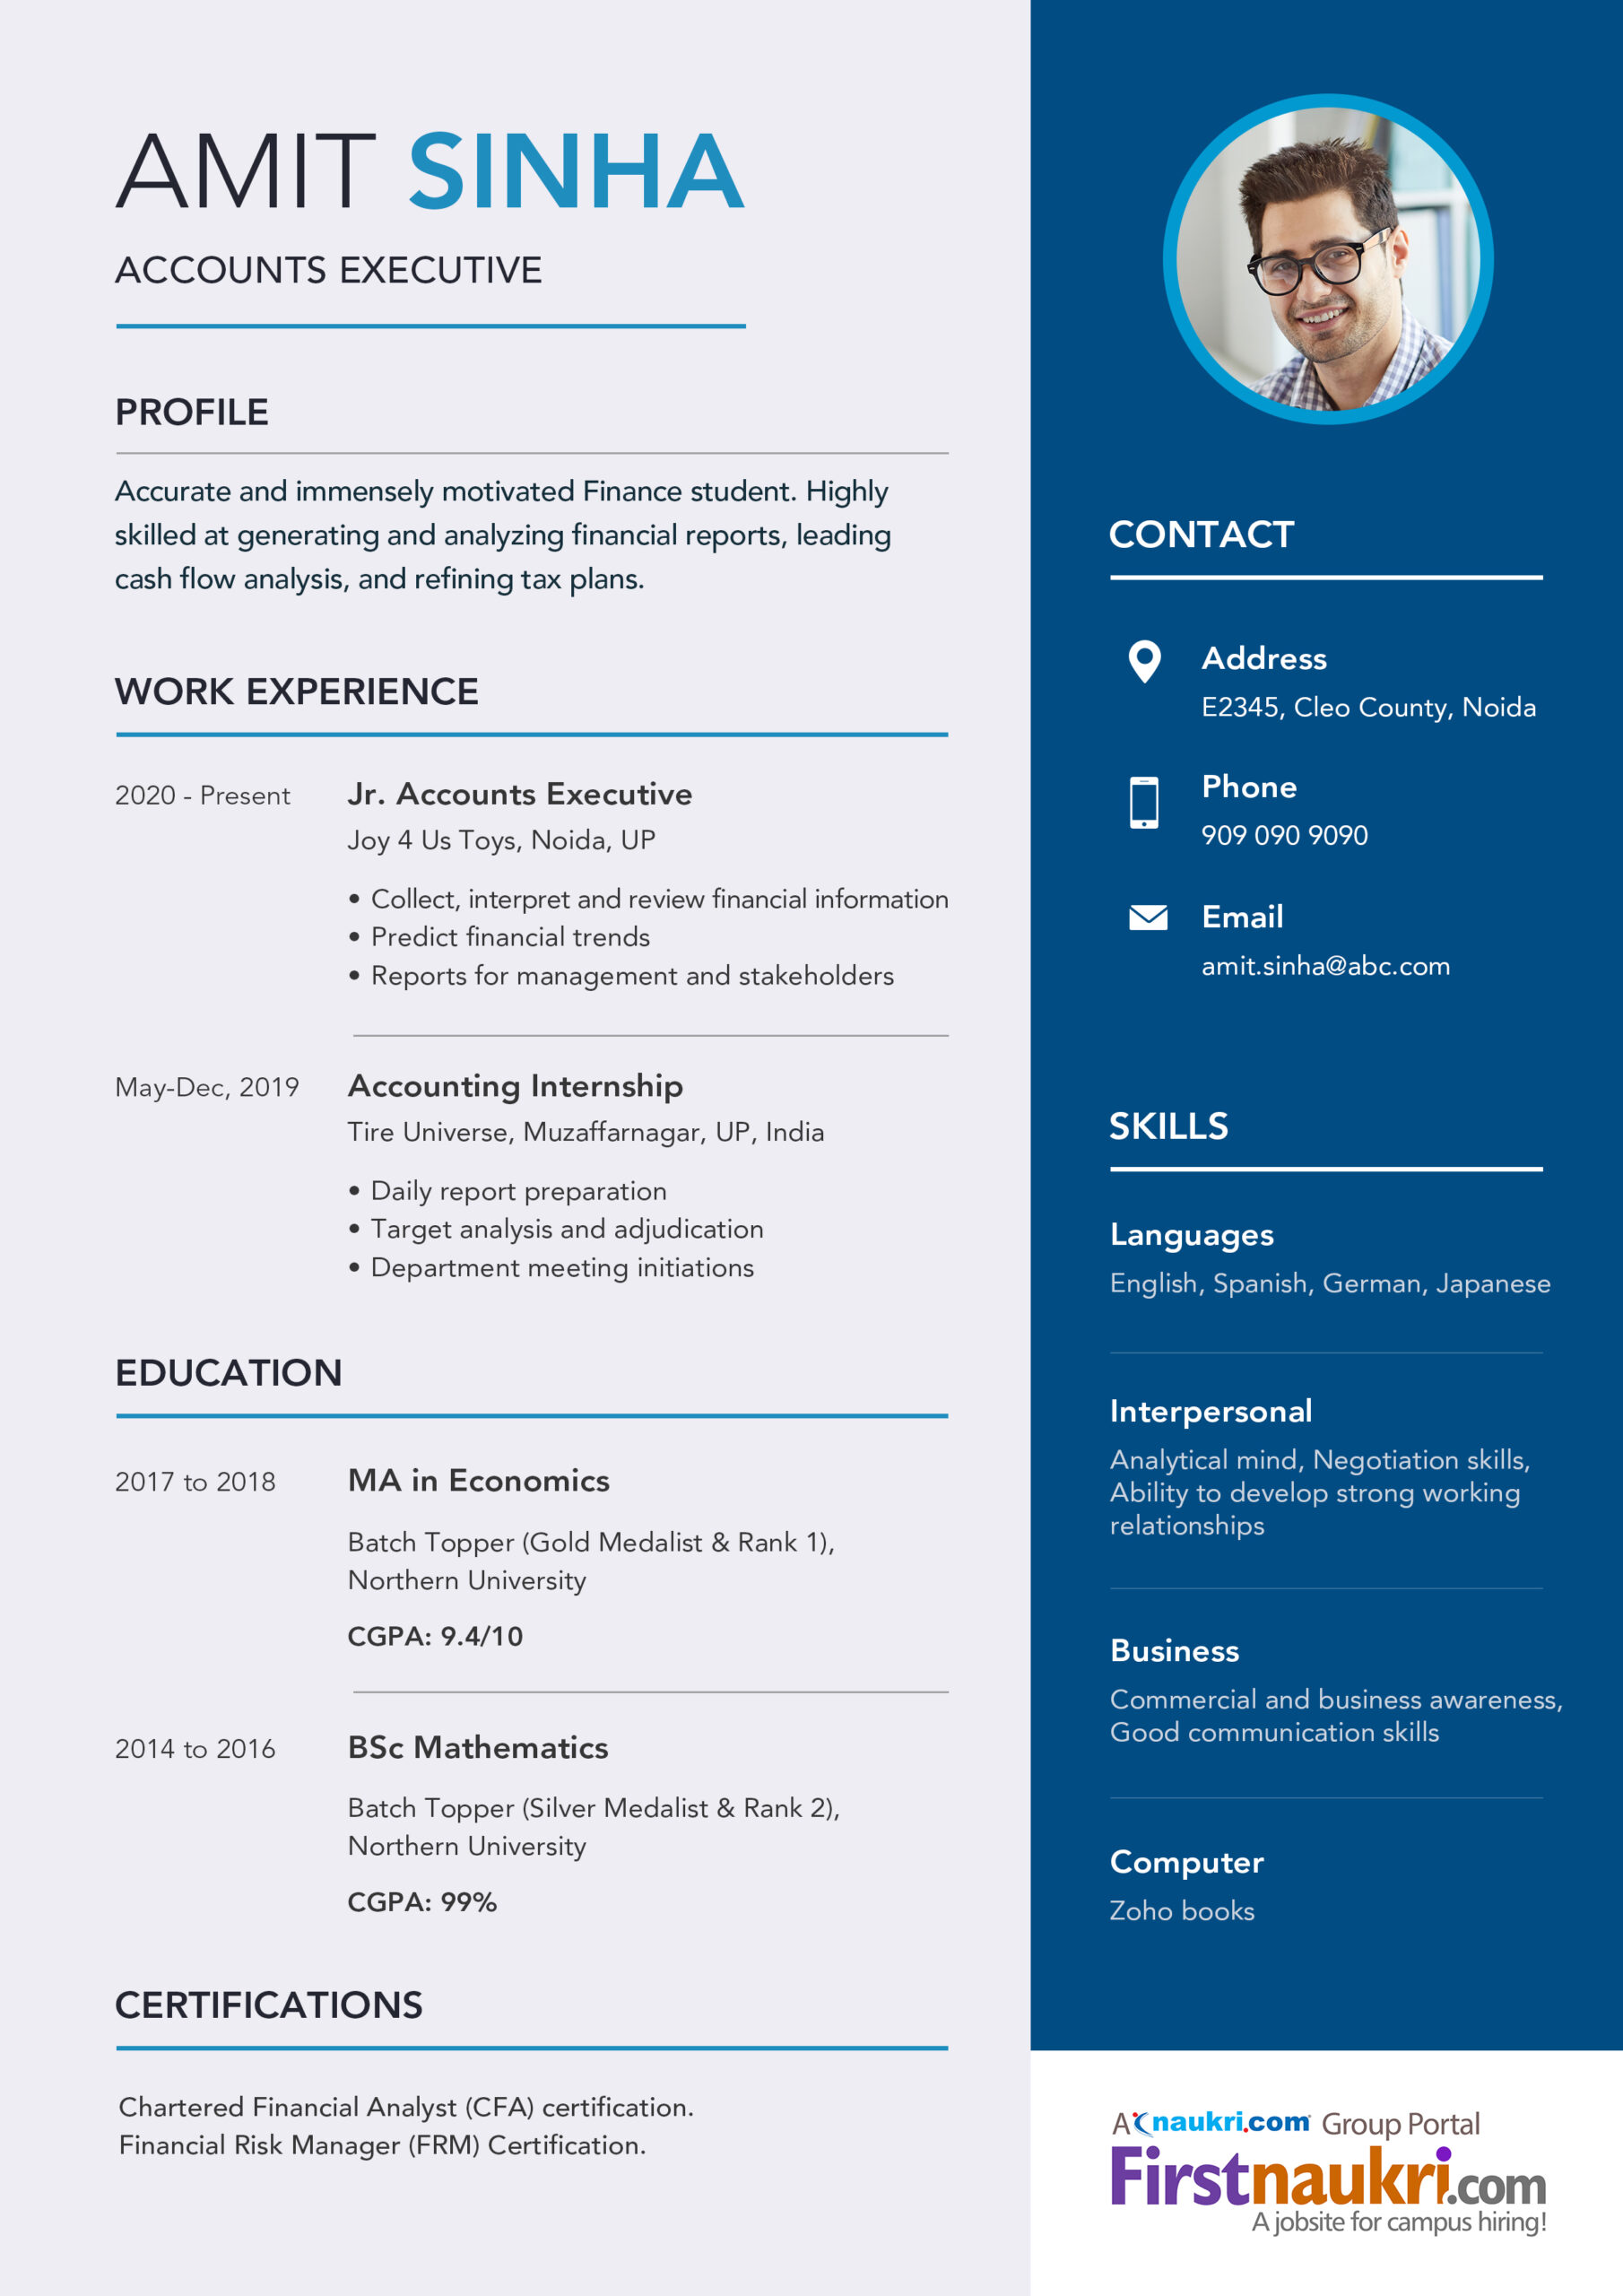 accounting resume sample career guidance latest templates for freshers design etsy writer Resume Latest Resume Templates For Freshers